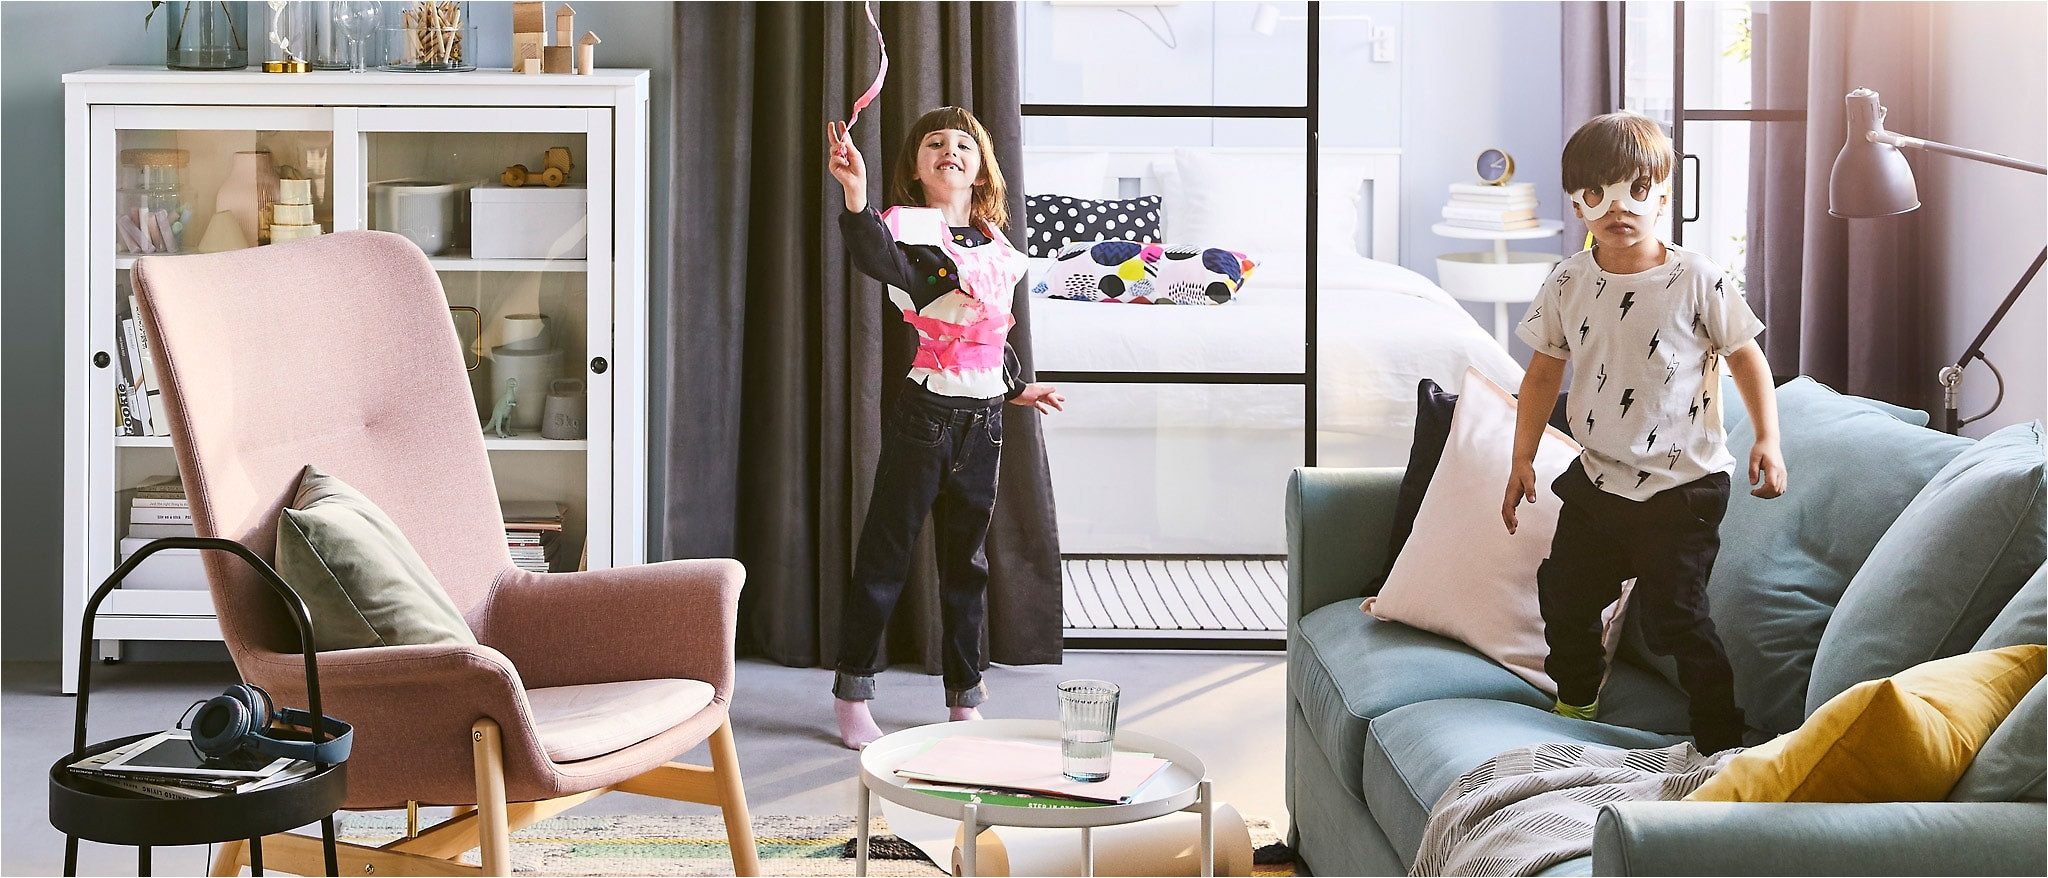 the 2019 ikea catalogue cover features two children playing in a living room they can